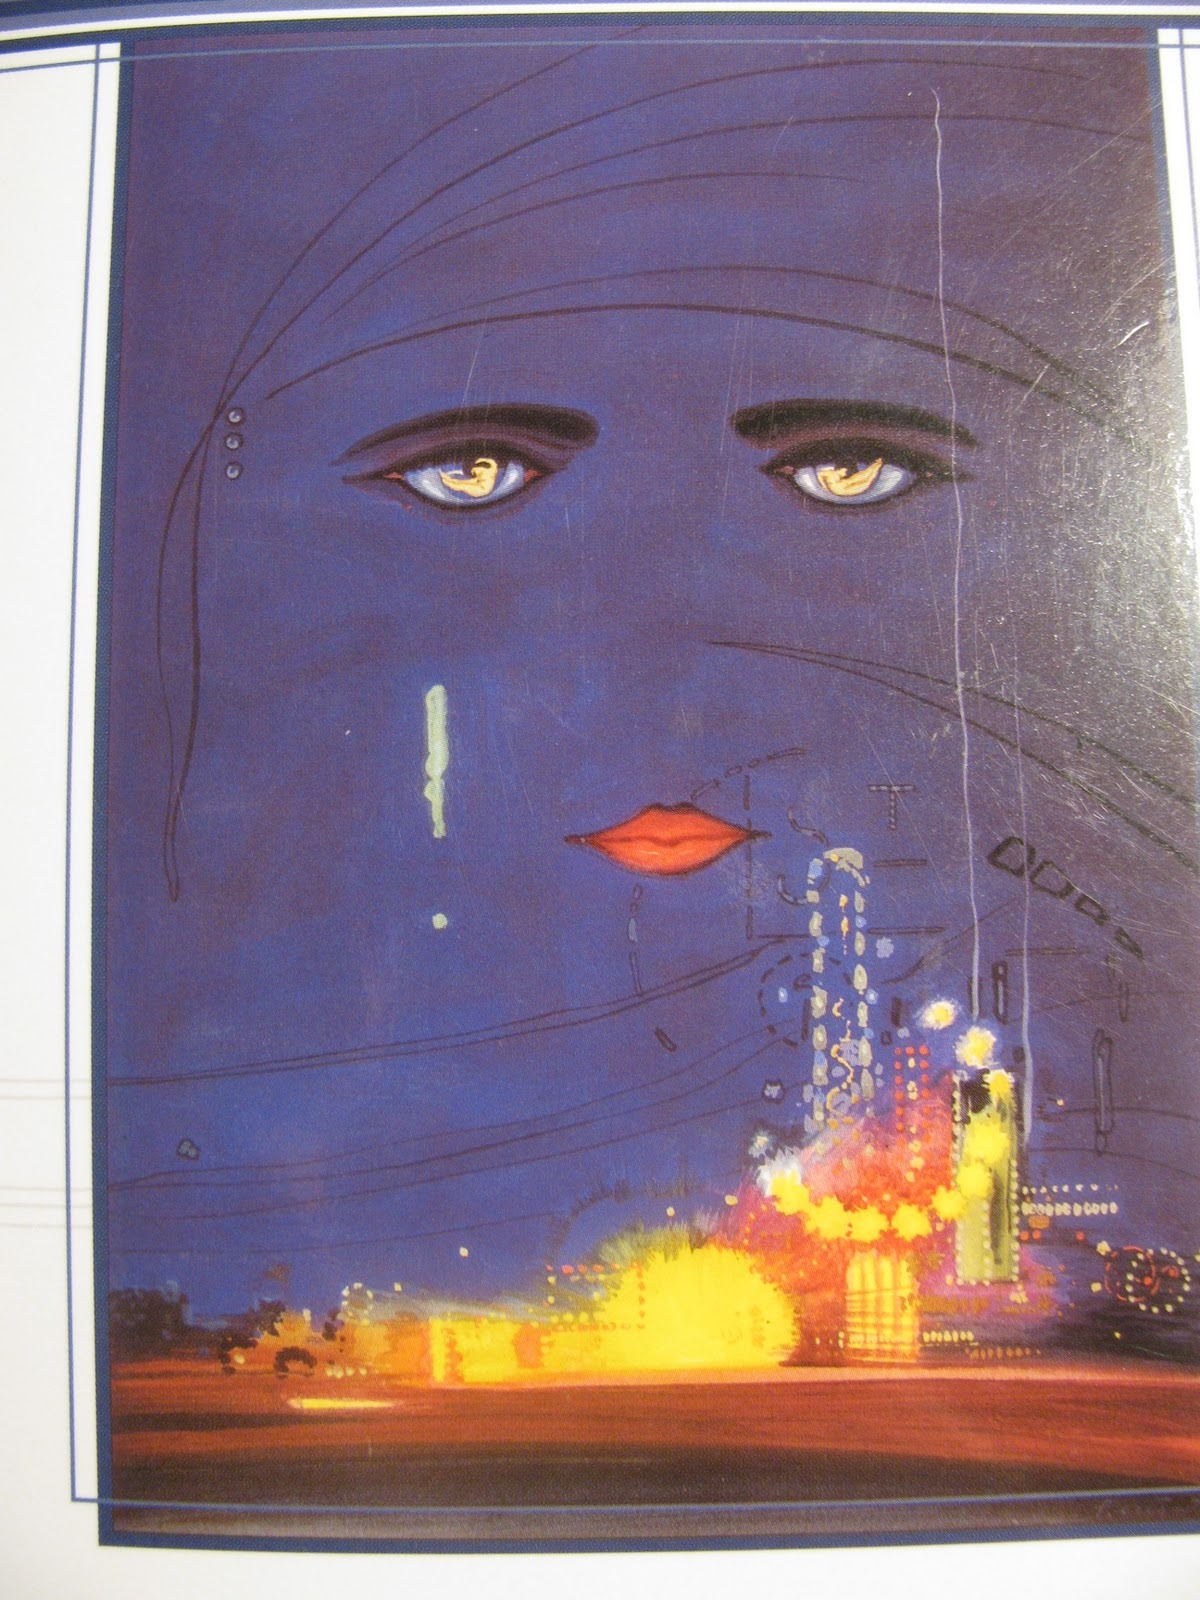 "Artwork for The Great Gatsby, F. Scott Fitzgerald, 1925, by Francis Cugat. The painting is titled Celestial Eyes and Fitzgerald was aware of Cugat's progress with the dust jacket design while he was still writing the book. He was so impressed and inspired by it that he commented to his editor at Scribner's, the great Maxwell Perkins: ""For Christ's sake don't give anyone that jacket you're saving for me. I've written it into the book"" (Fitzgerald: A Life in Letters, p. 79)."